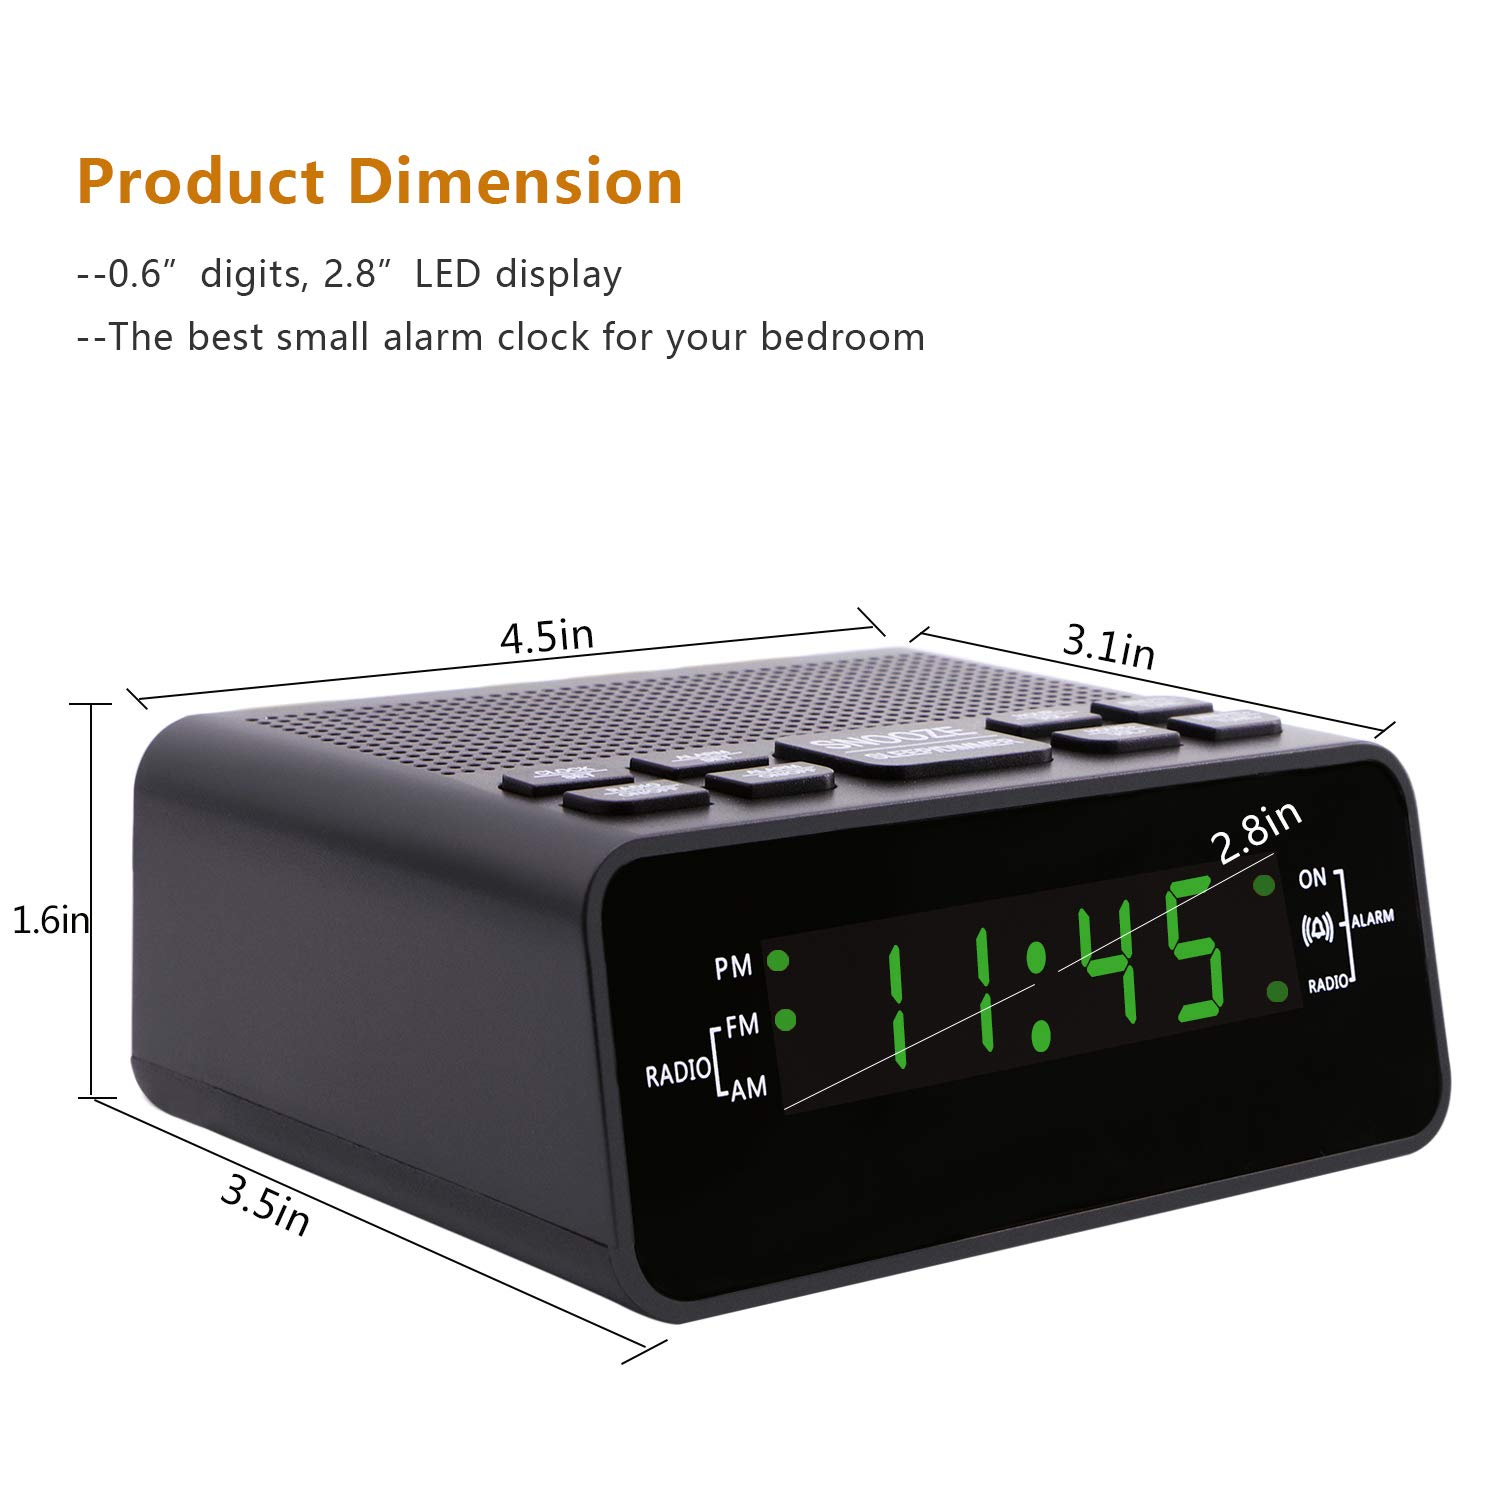 Amazon.com: Alarm Clock, Digital Alarm Clock Radio with AM ...